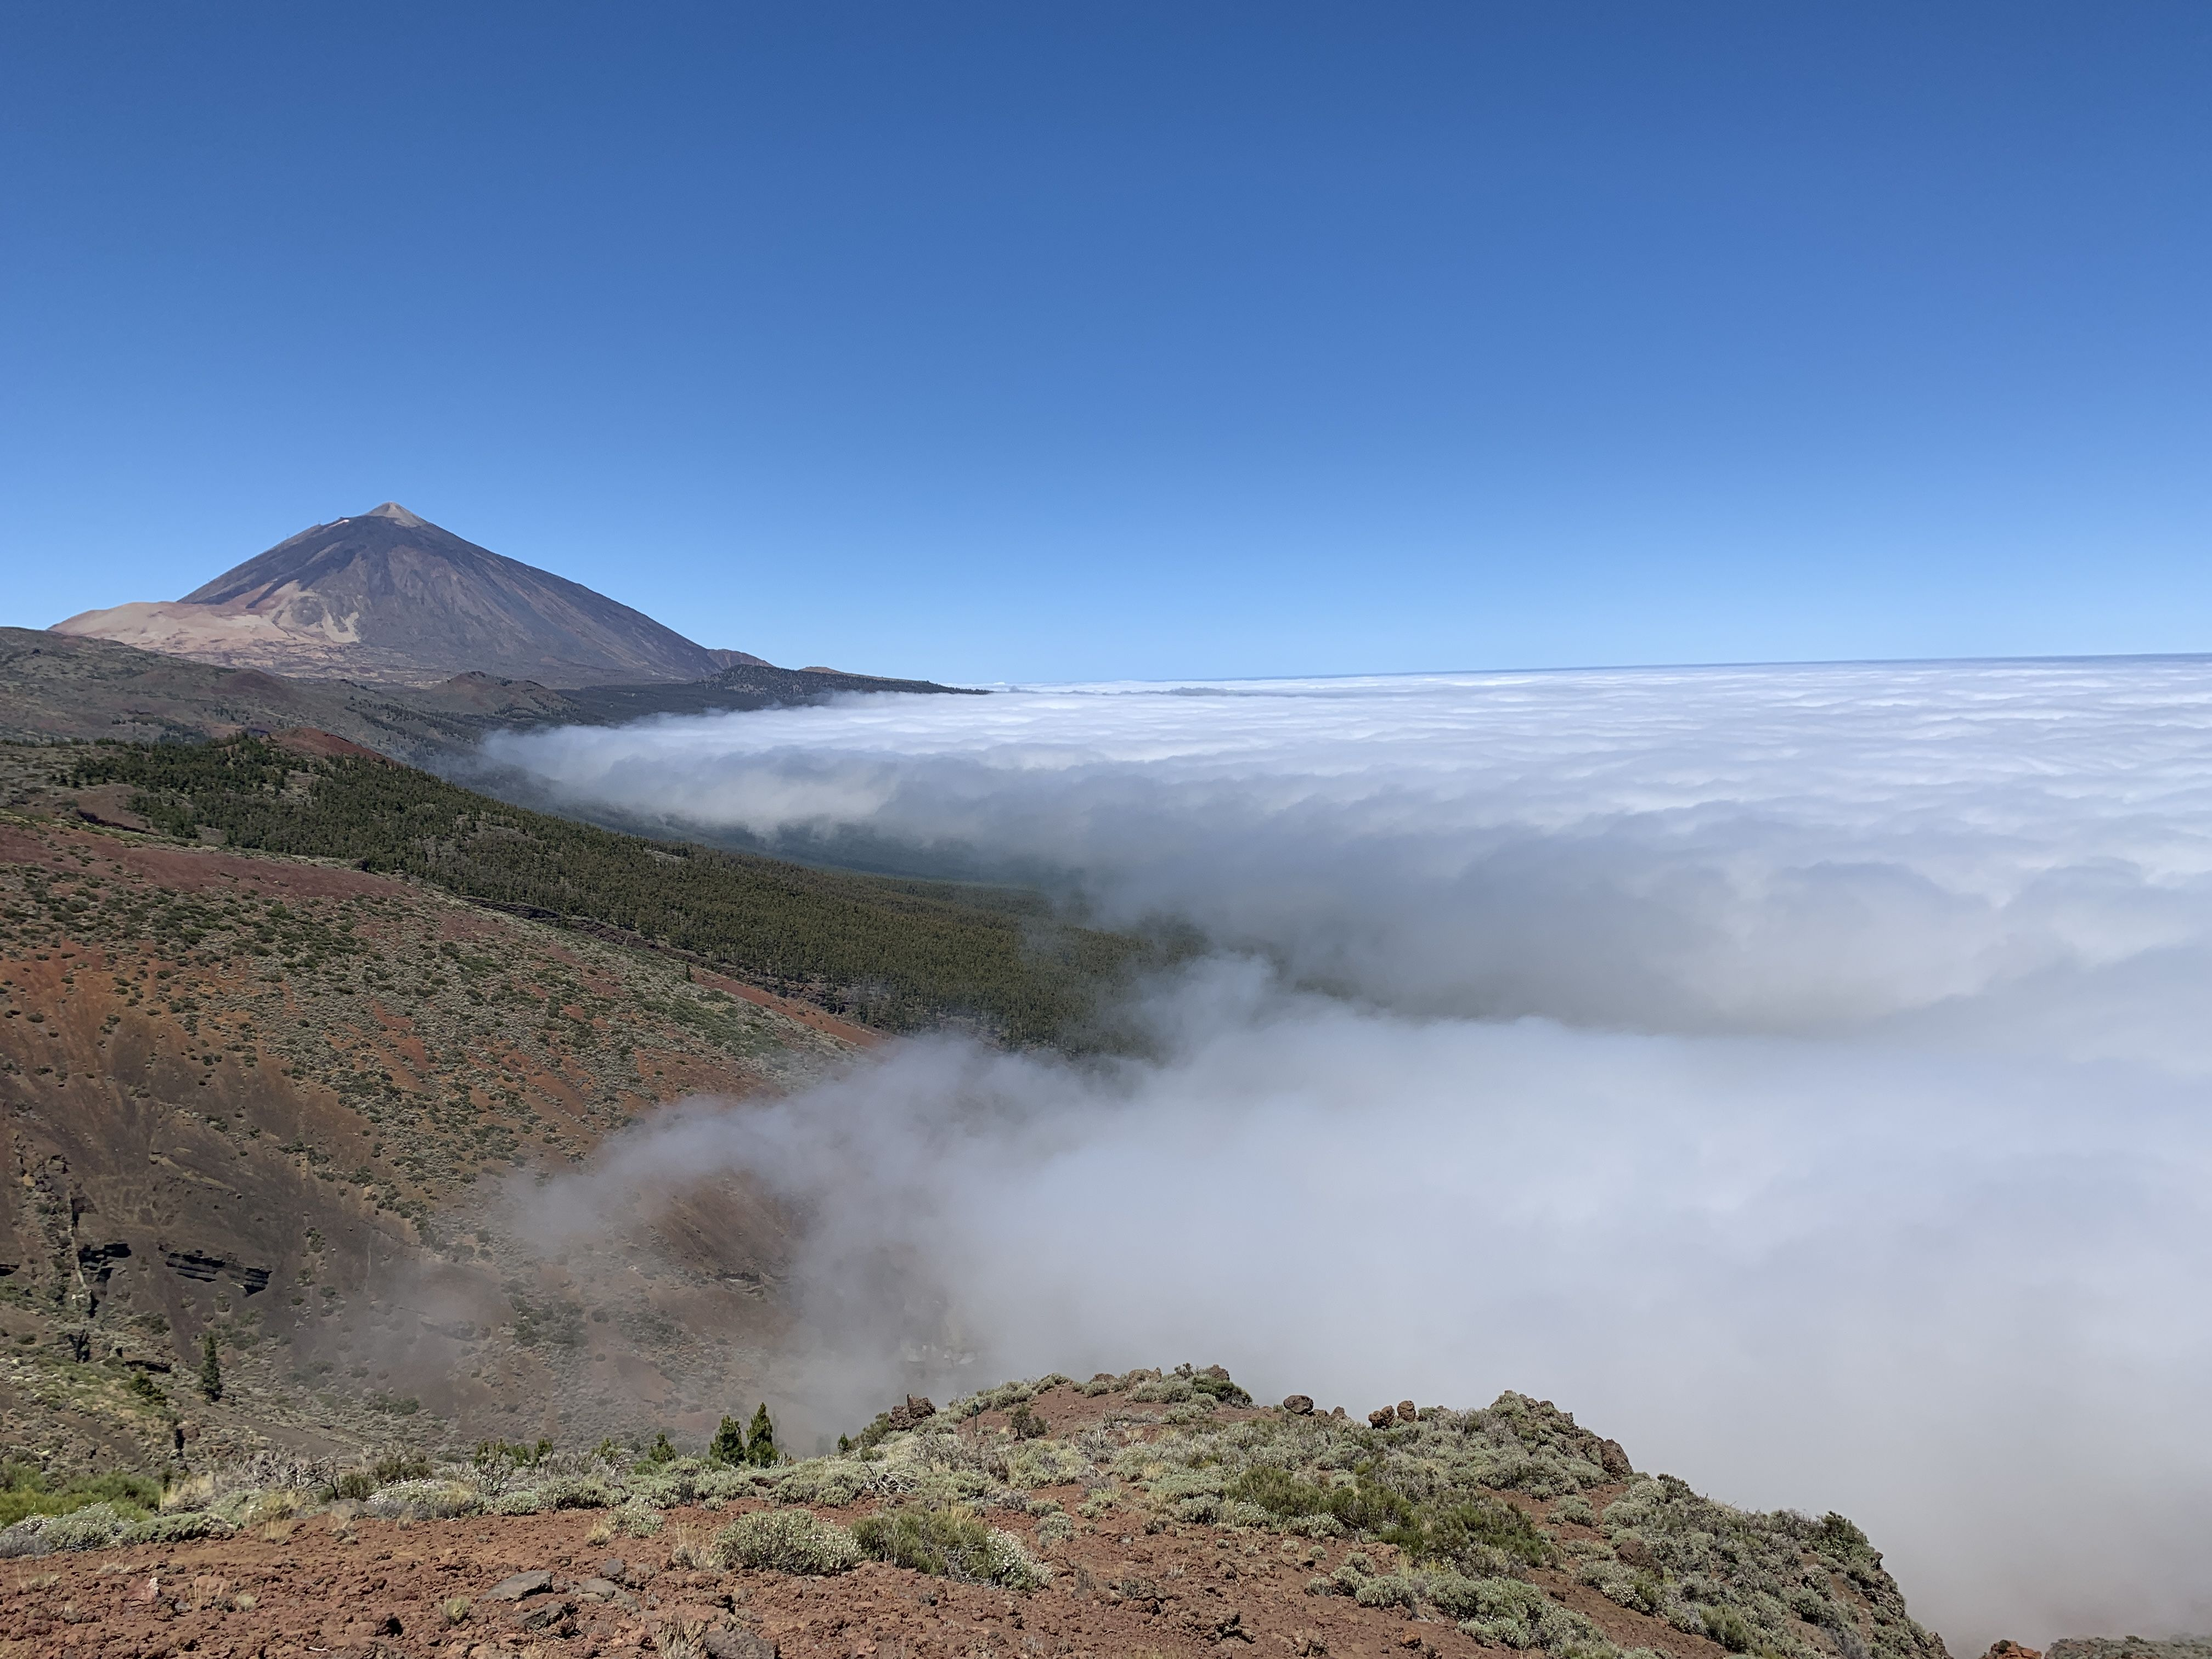 Excursions to Teide in Tenerife